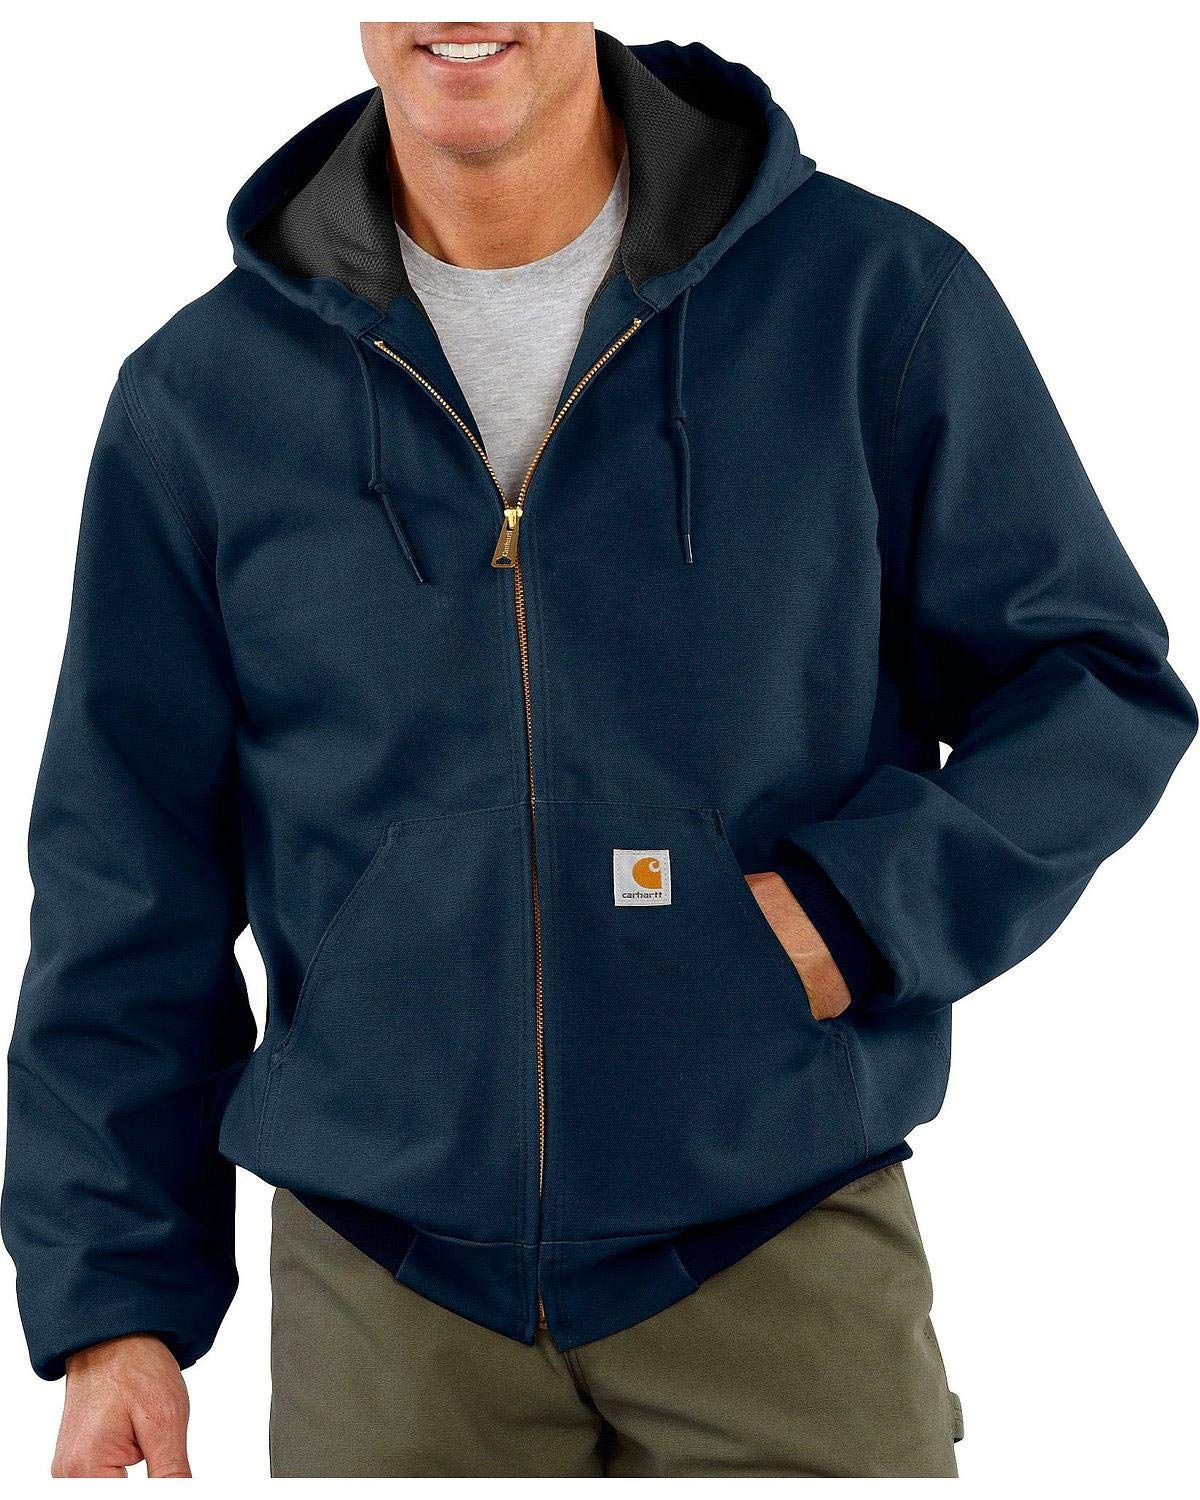 Carhartt Men's Thermal Lined Duck Active Jacket J131 (Regular and Big & Tall Sizes), Dark Navy, X-Large Tall by Carhartt